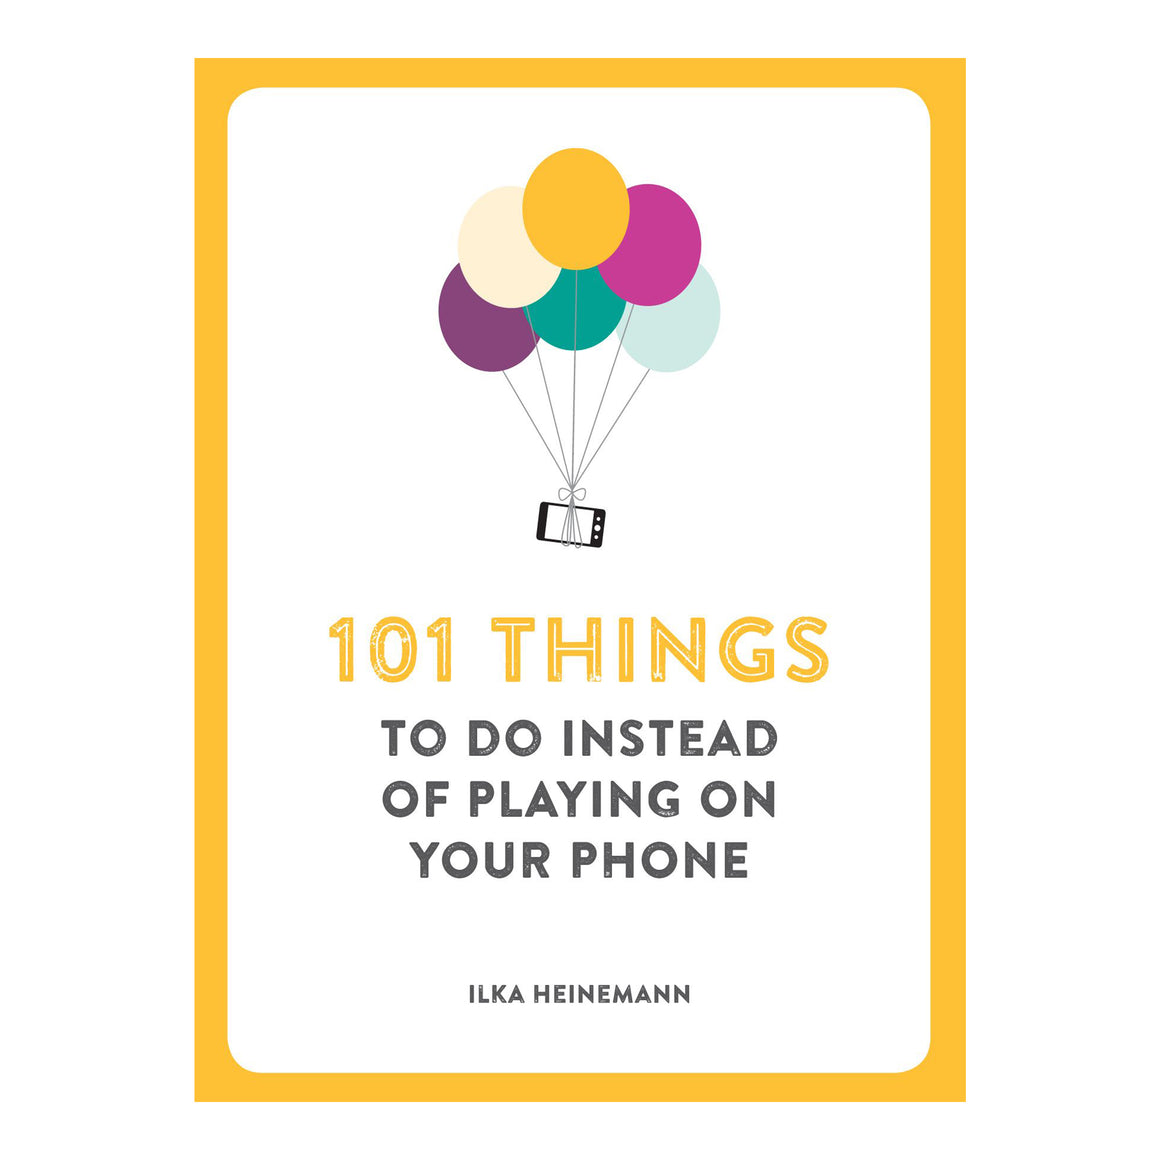 101 Things To Do Instead of Playing on Your Phone by Ilka Heinemann